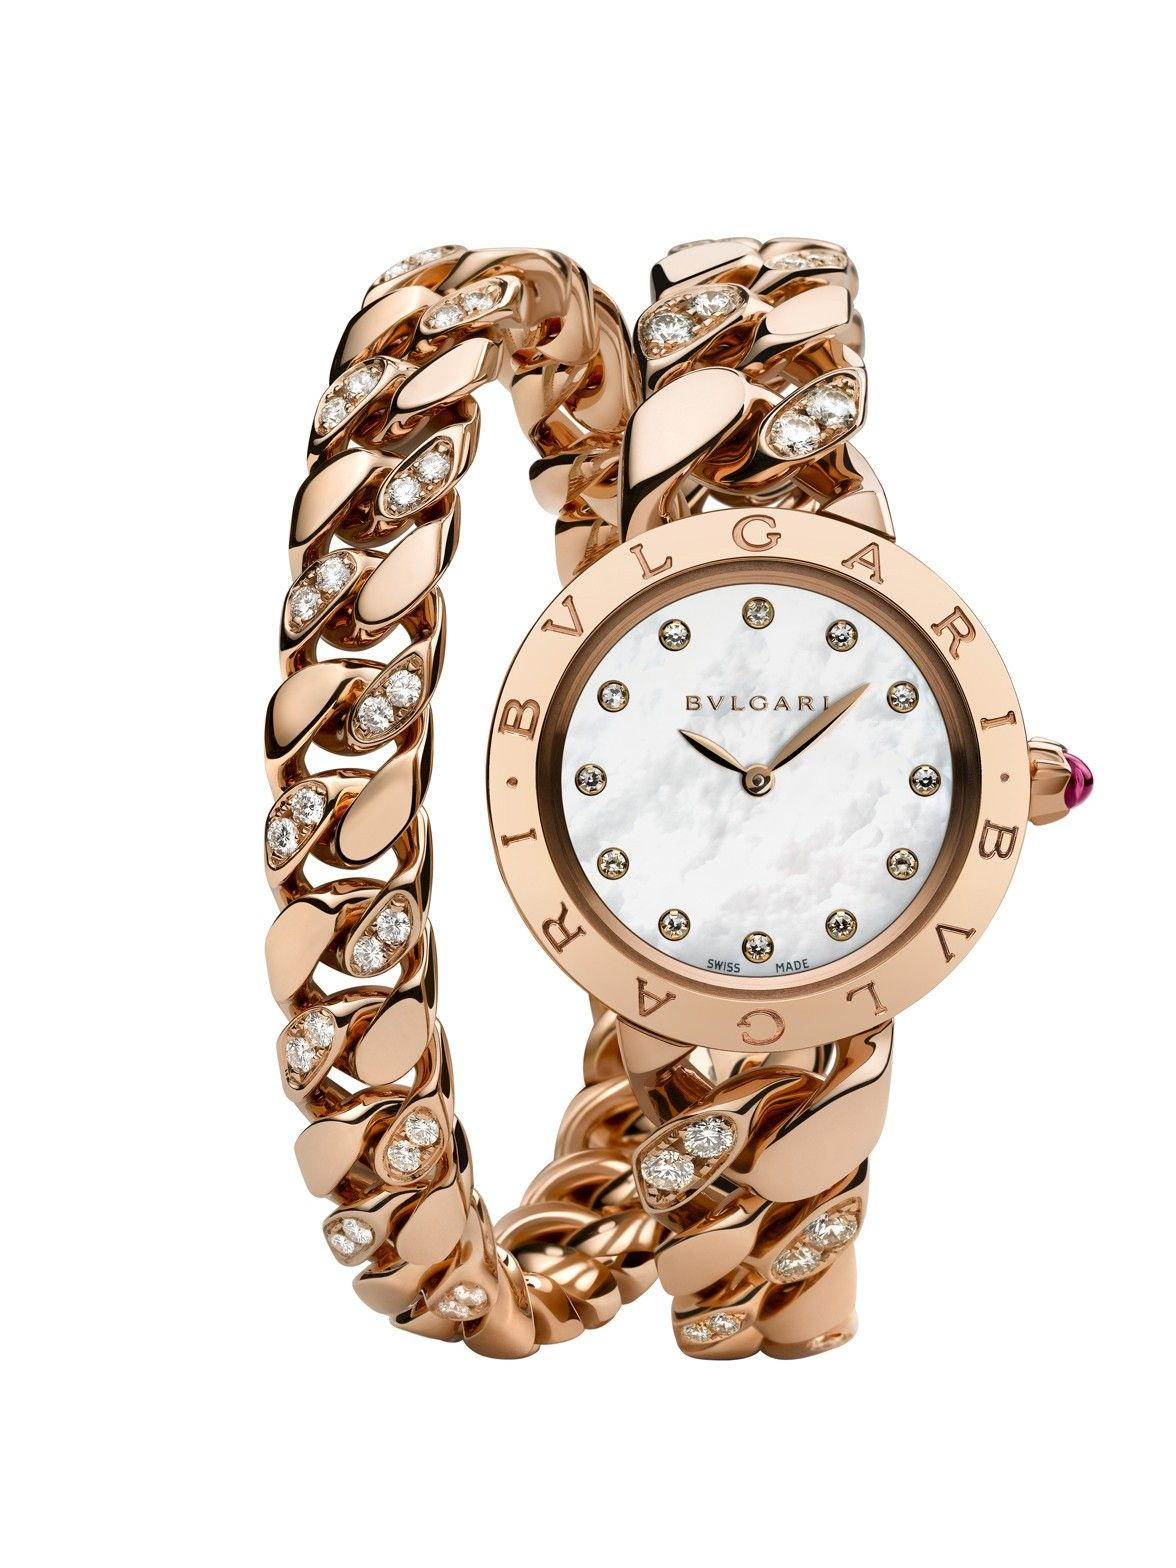 Bvlgari bvlgari pink gold catene watch now at london jewelers